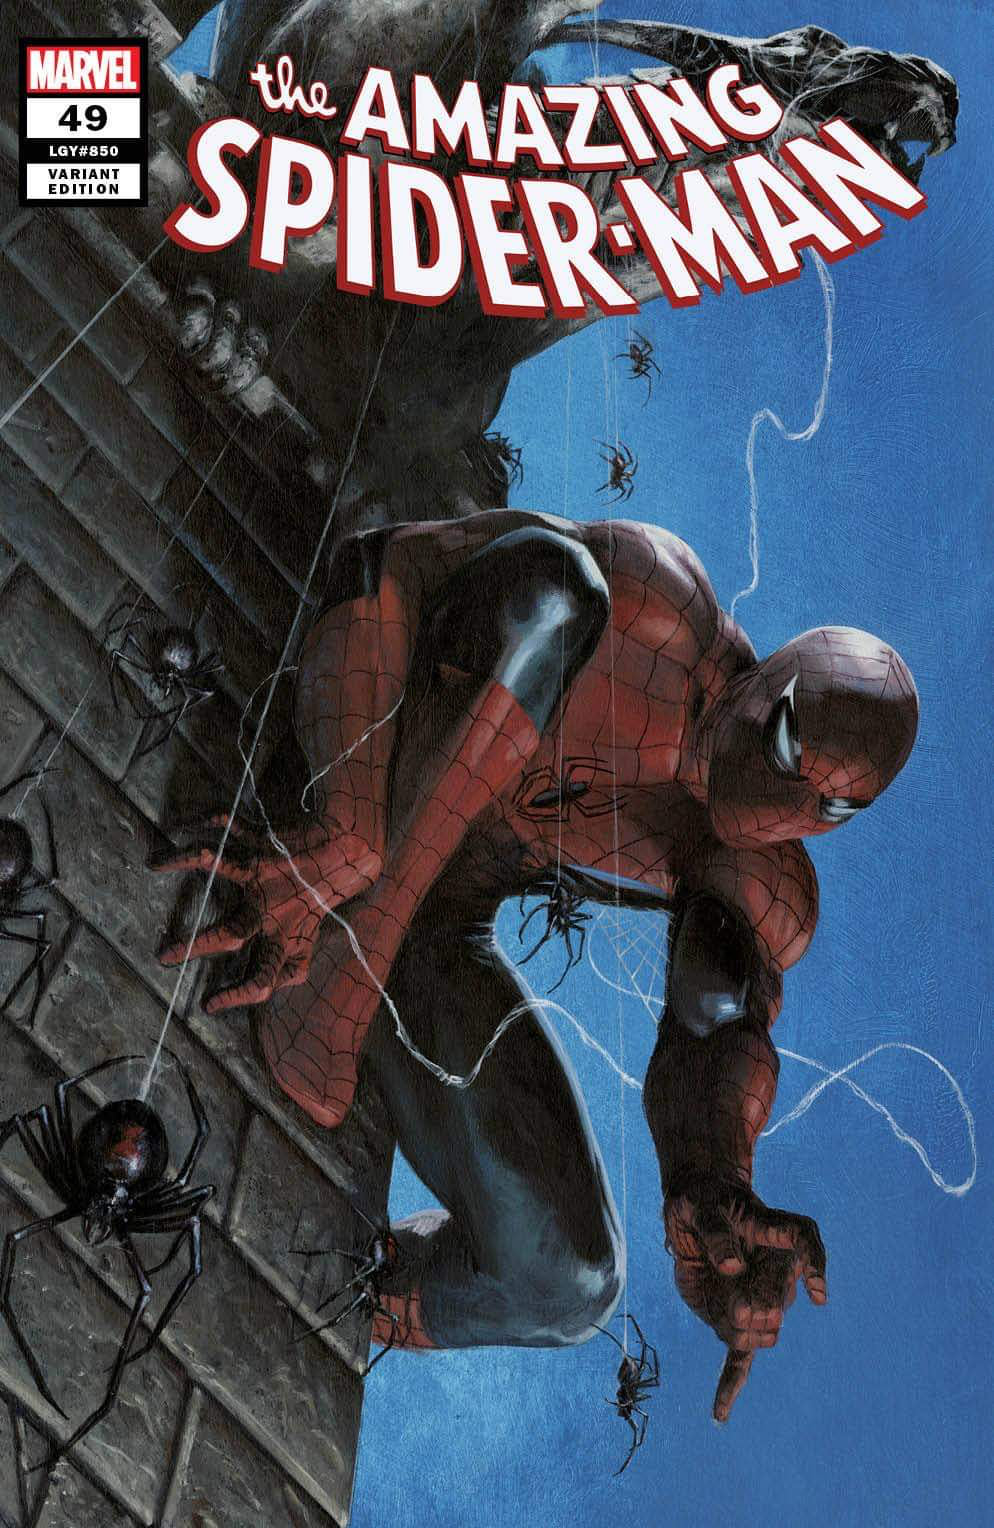 Amazing Spider-Man #49 Dell'Otto TRADE